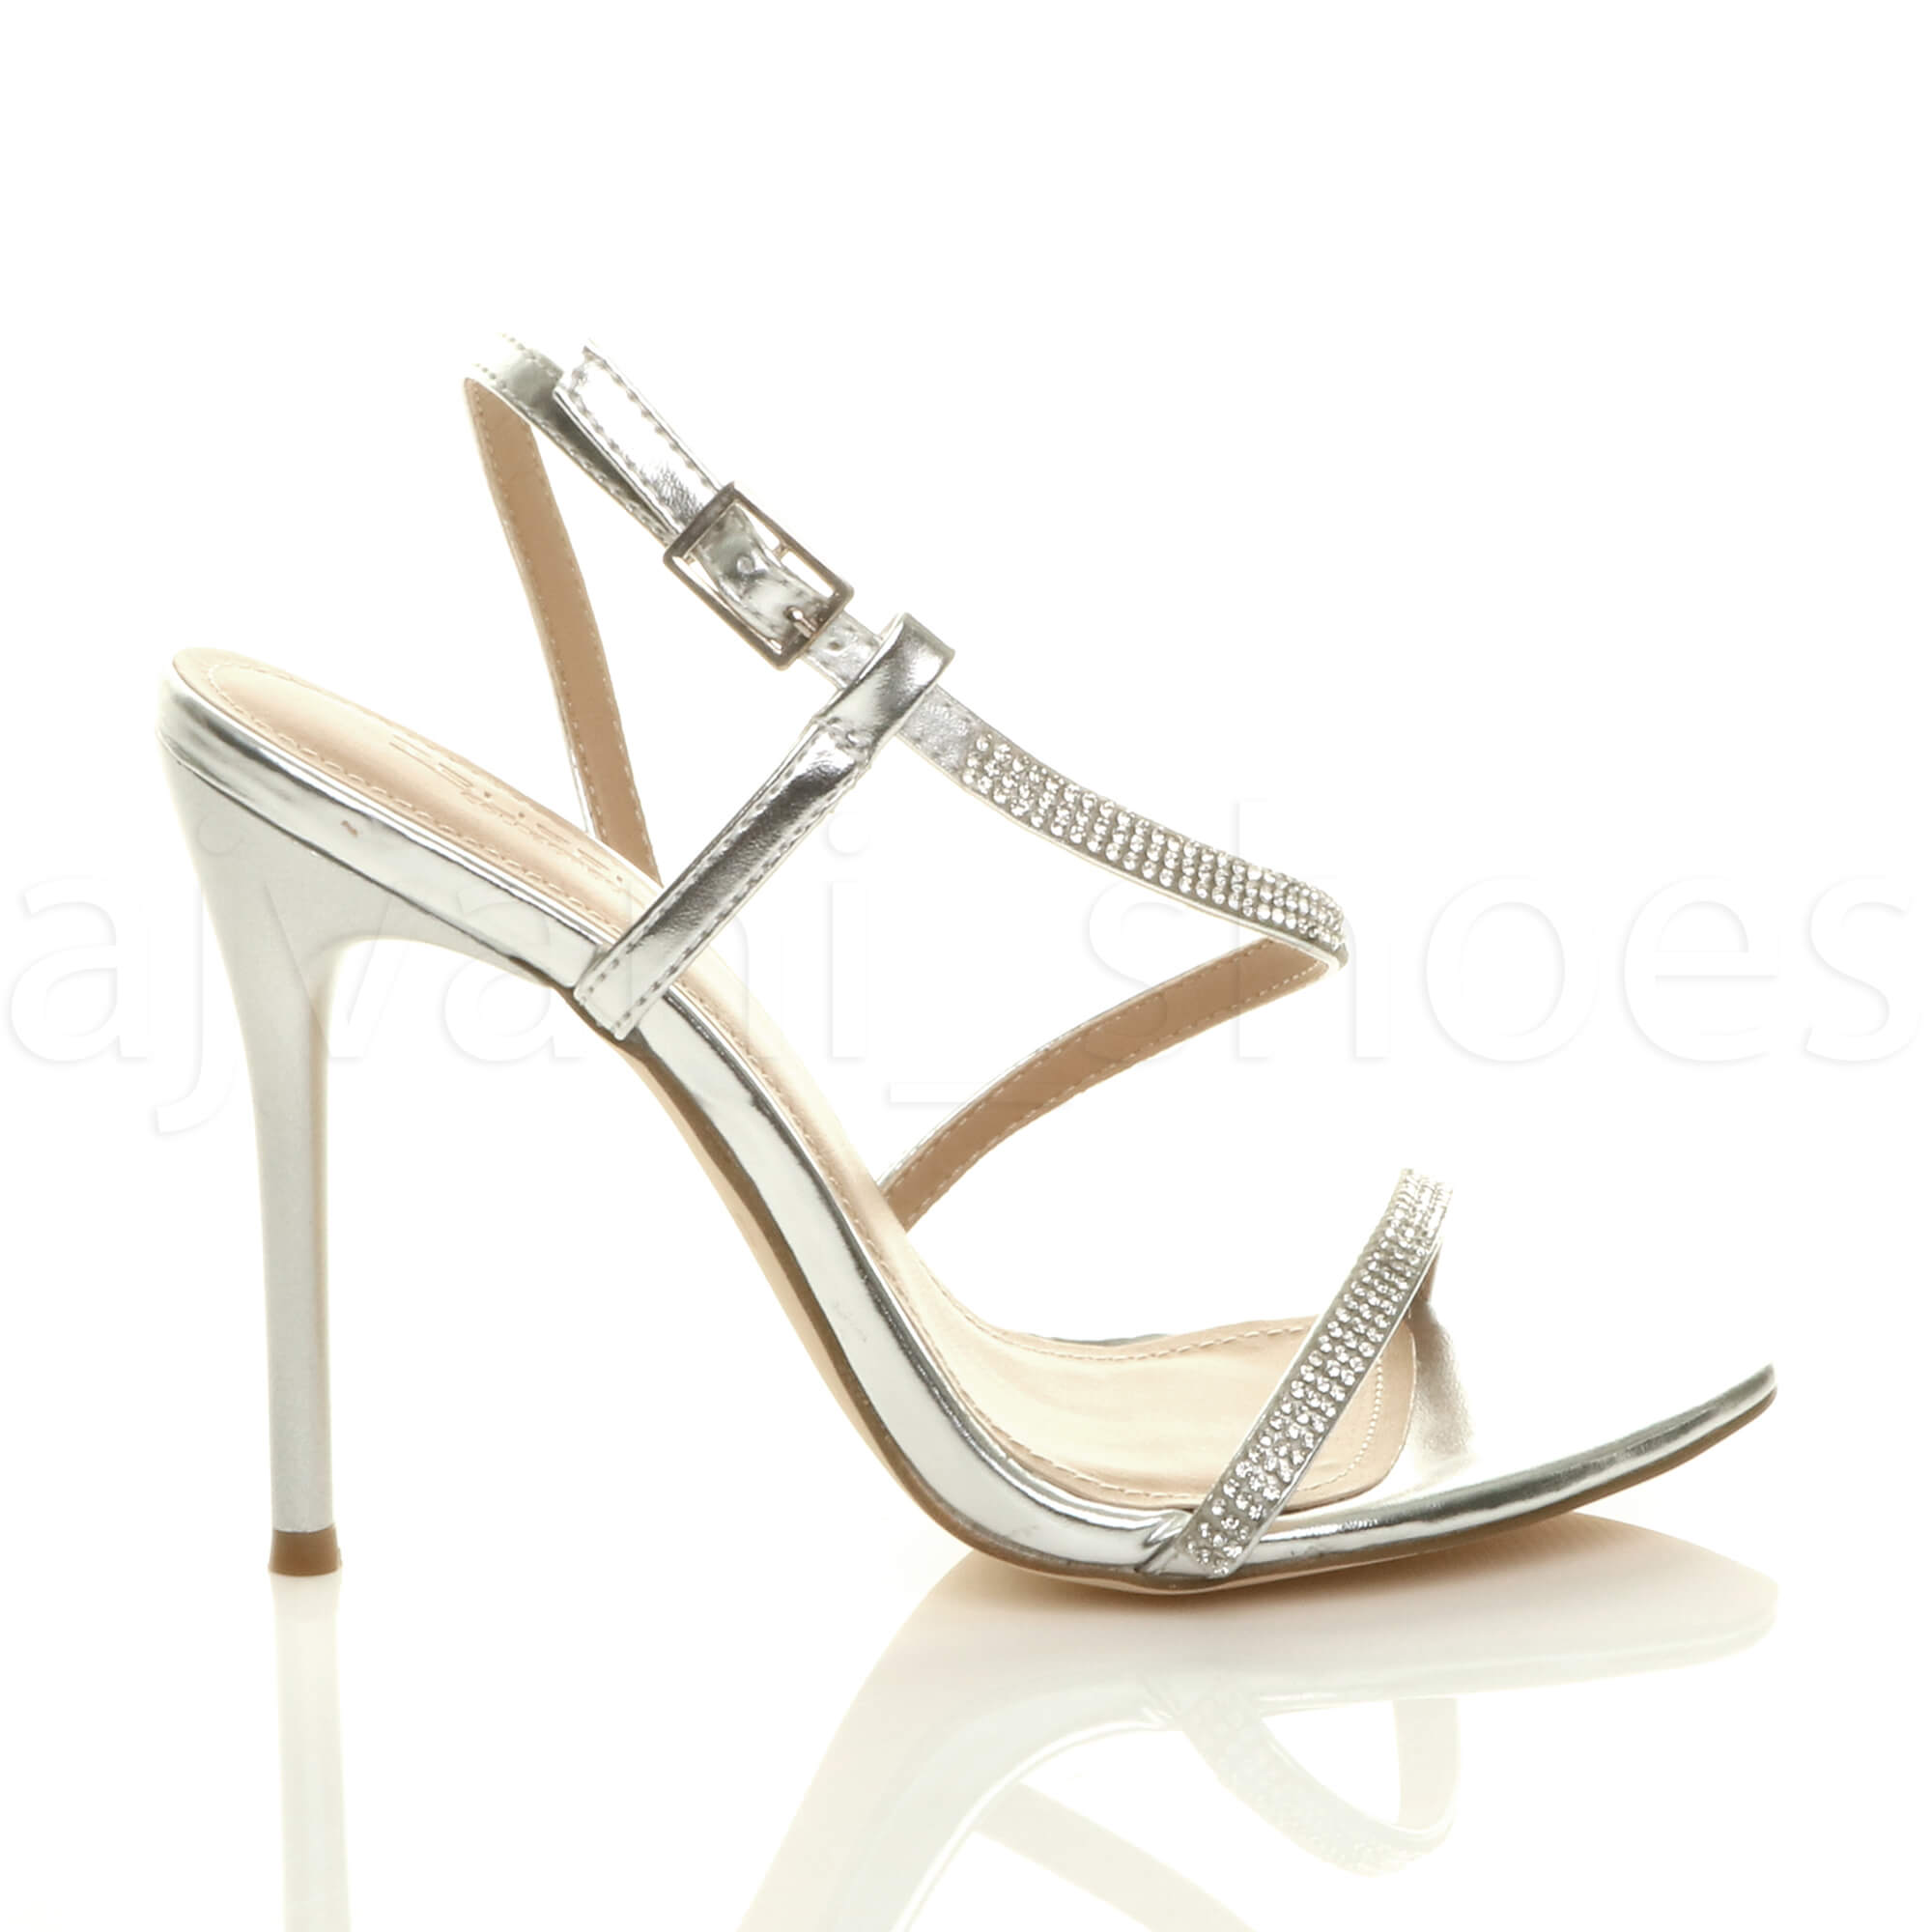 WOMENS-LADIES-HIGH-HEEL-DIAMANTE-BARELY-THERE-STRAPPY-EVENING-SANDALS-SIZE thumbnail 19